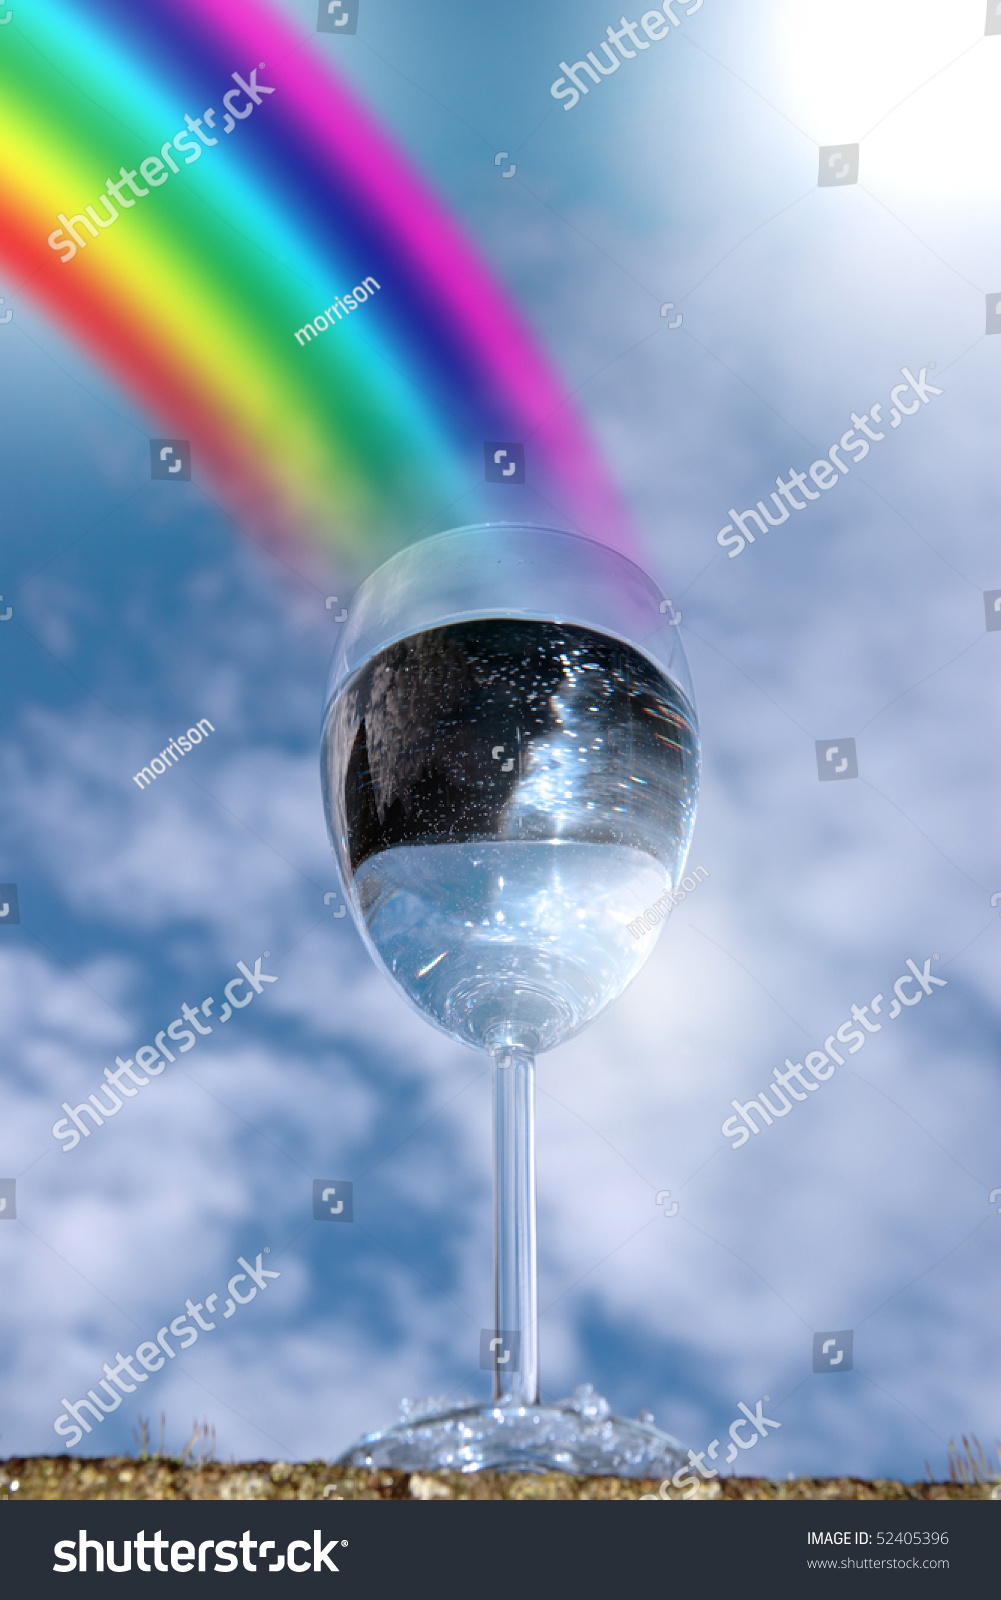 Glass Of Water Against A Sunny Sky With Rainbow Showing